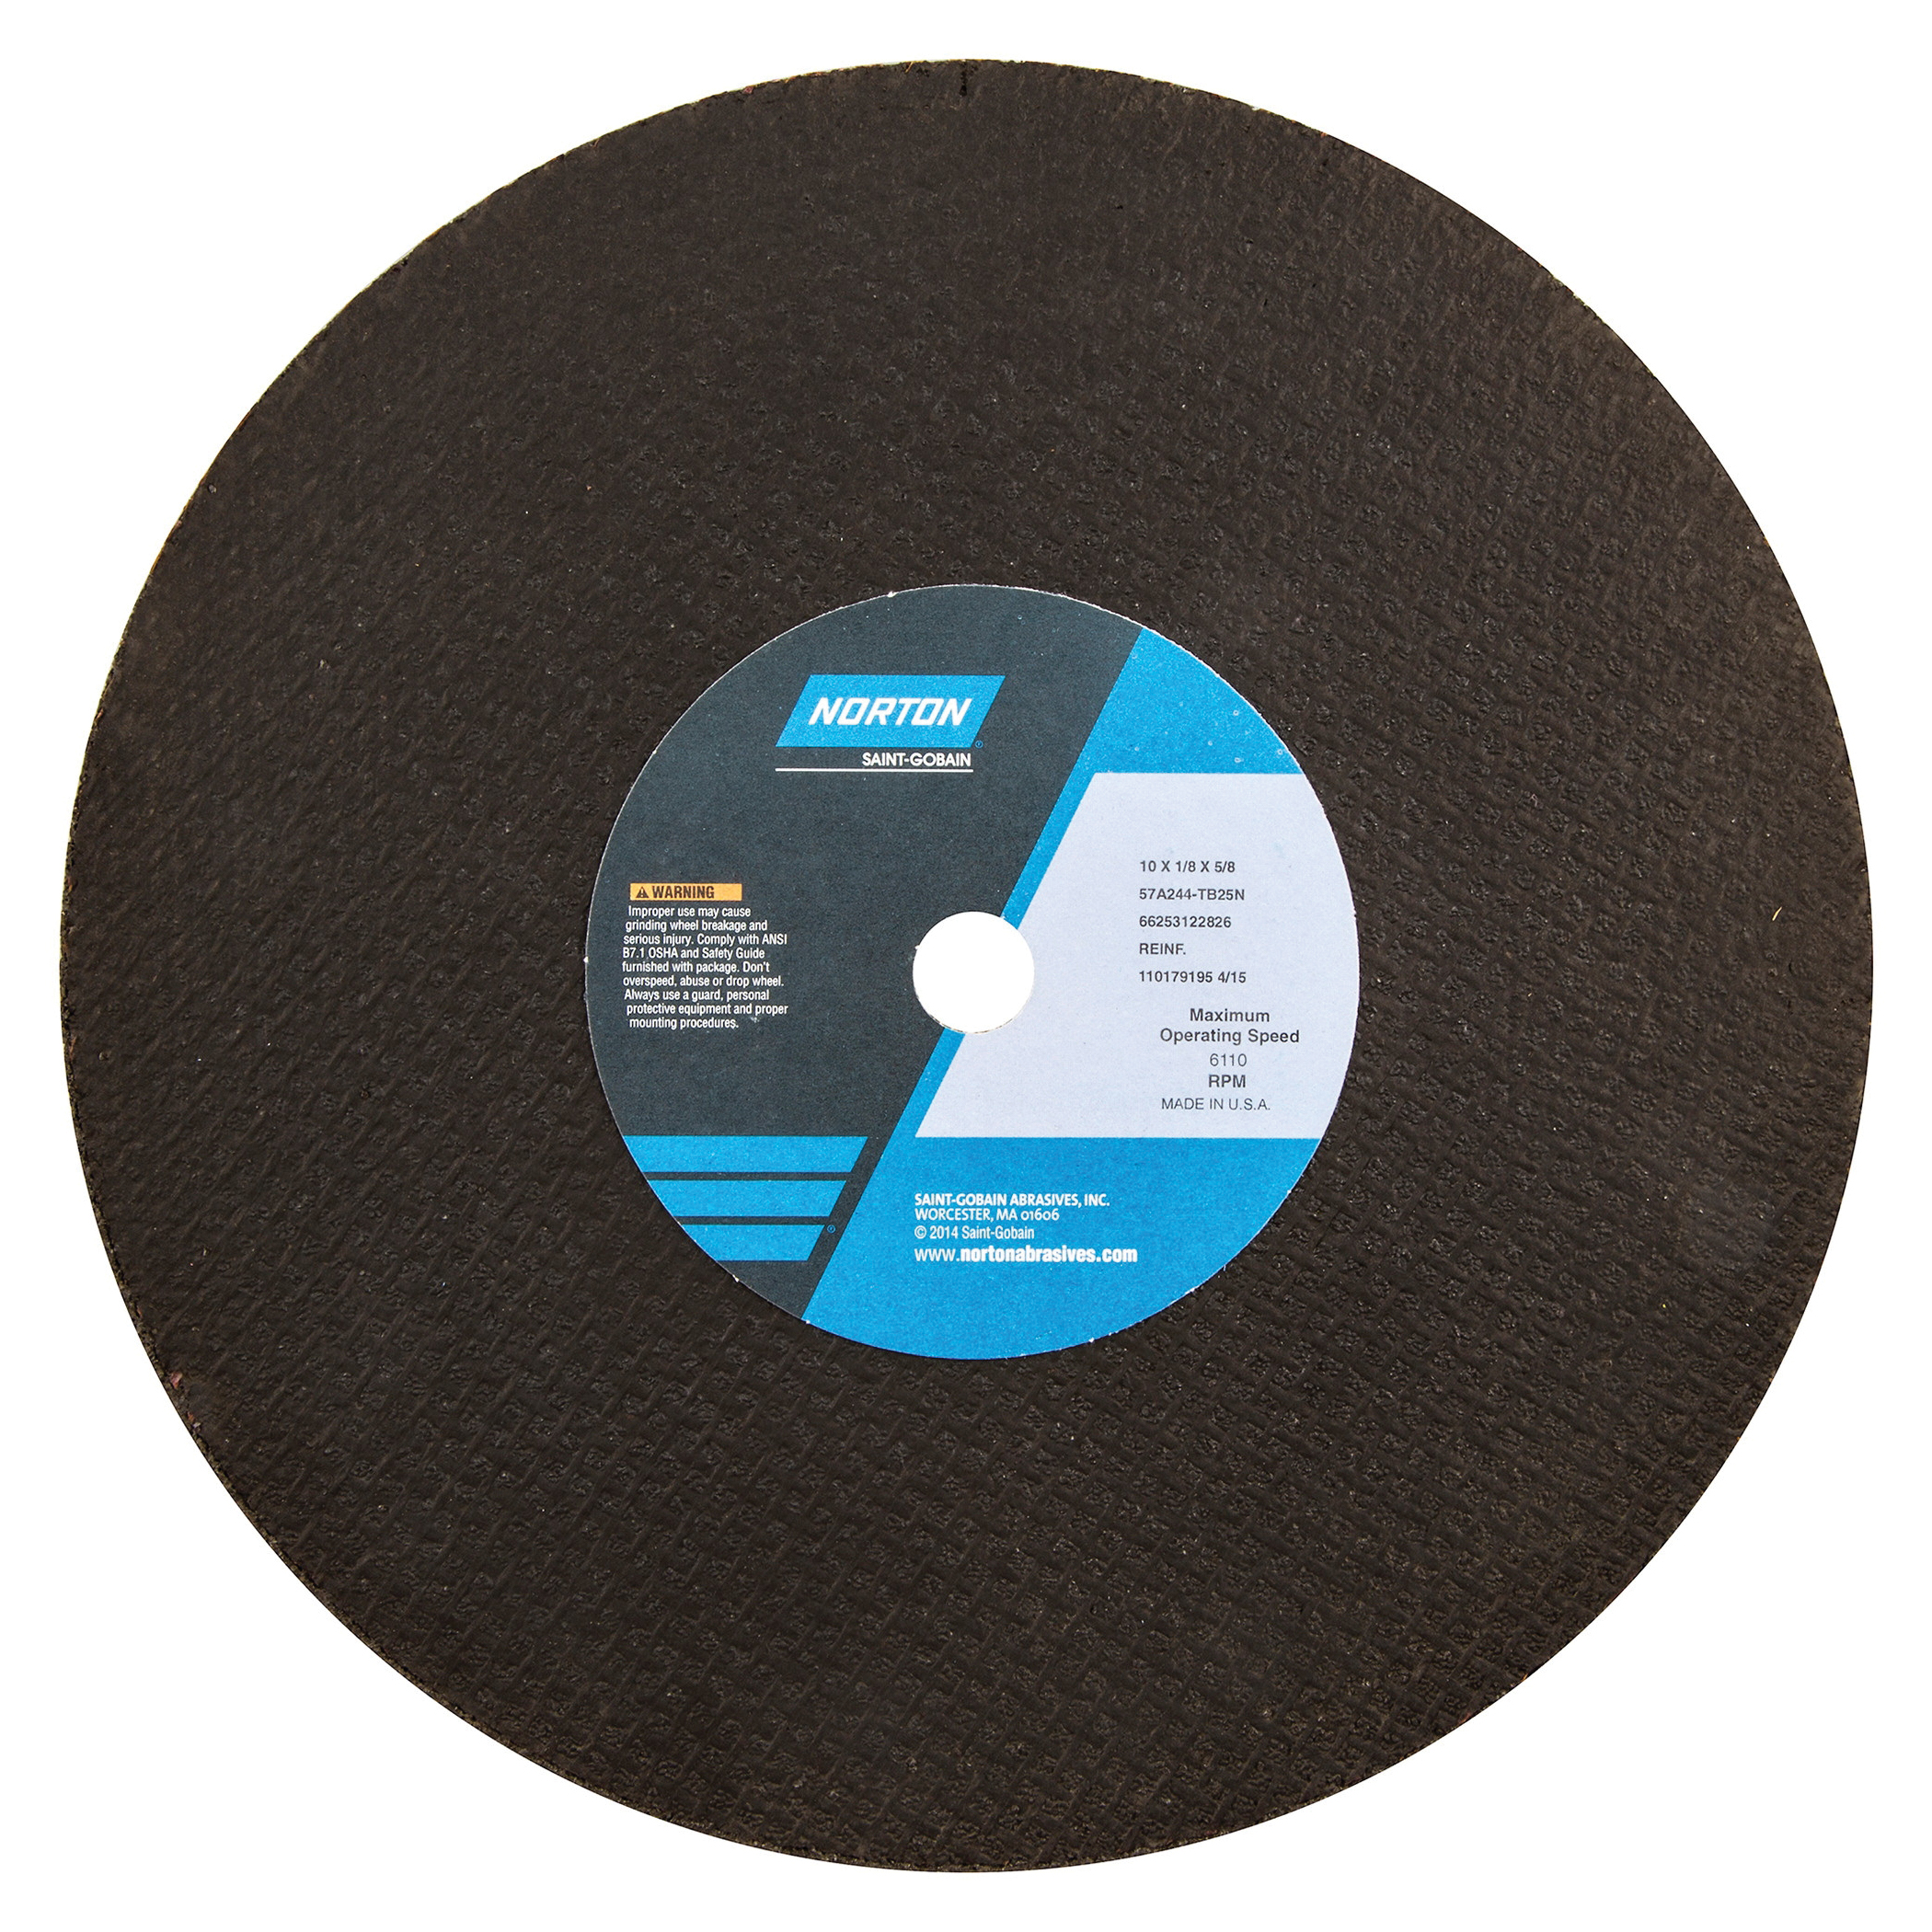 Norton® 66253122826 57A Toolroom Cut-Off Wheel, 10 in Dia x 1/8 in THK, 5/8 in Center Hole, 24 Grit, Aluminum Oxide Abrasive